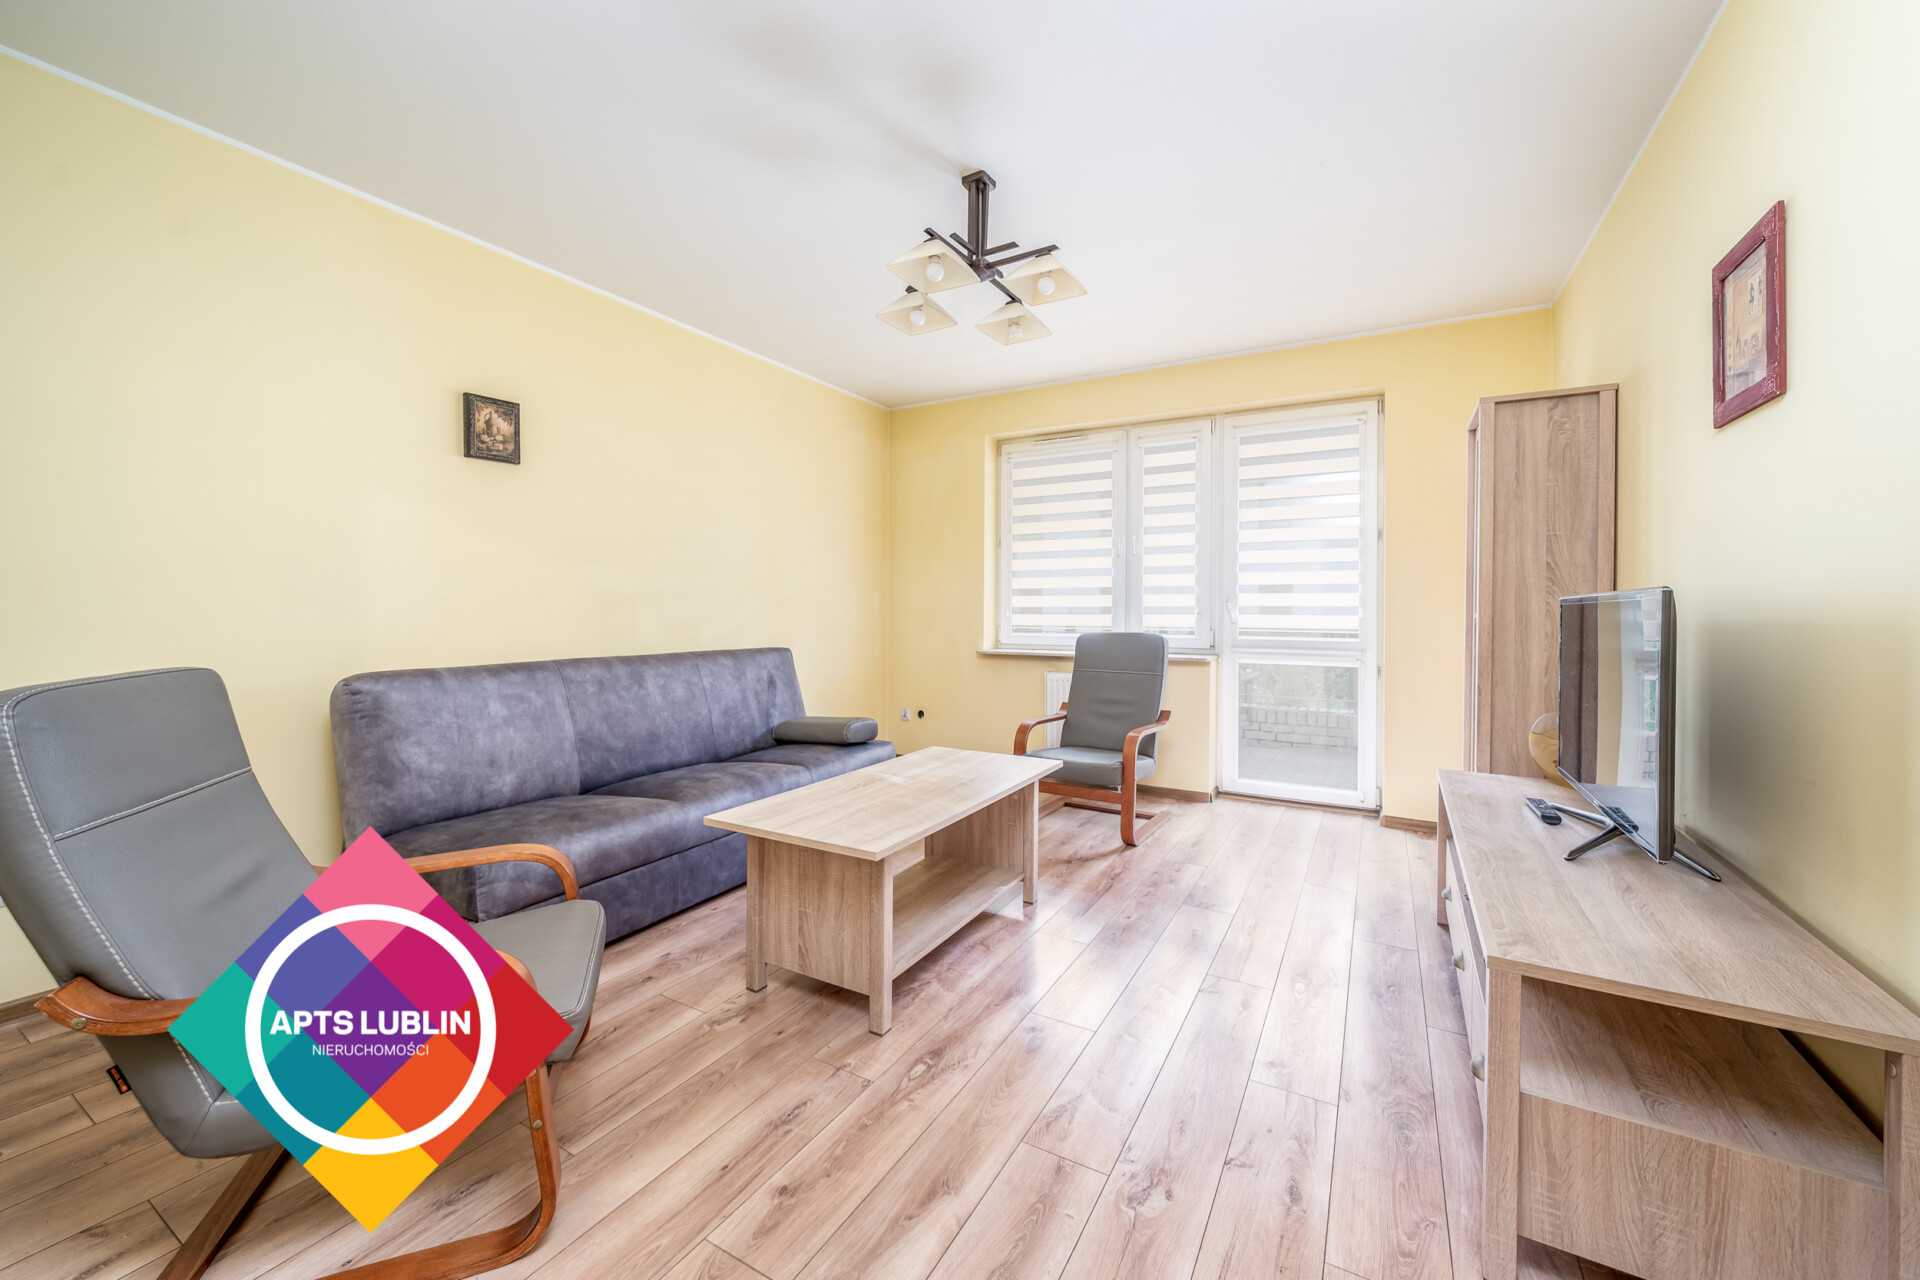 3 Bedroom apartment for rent close to MUL, VPU